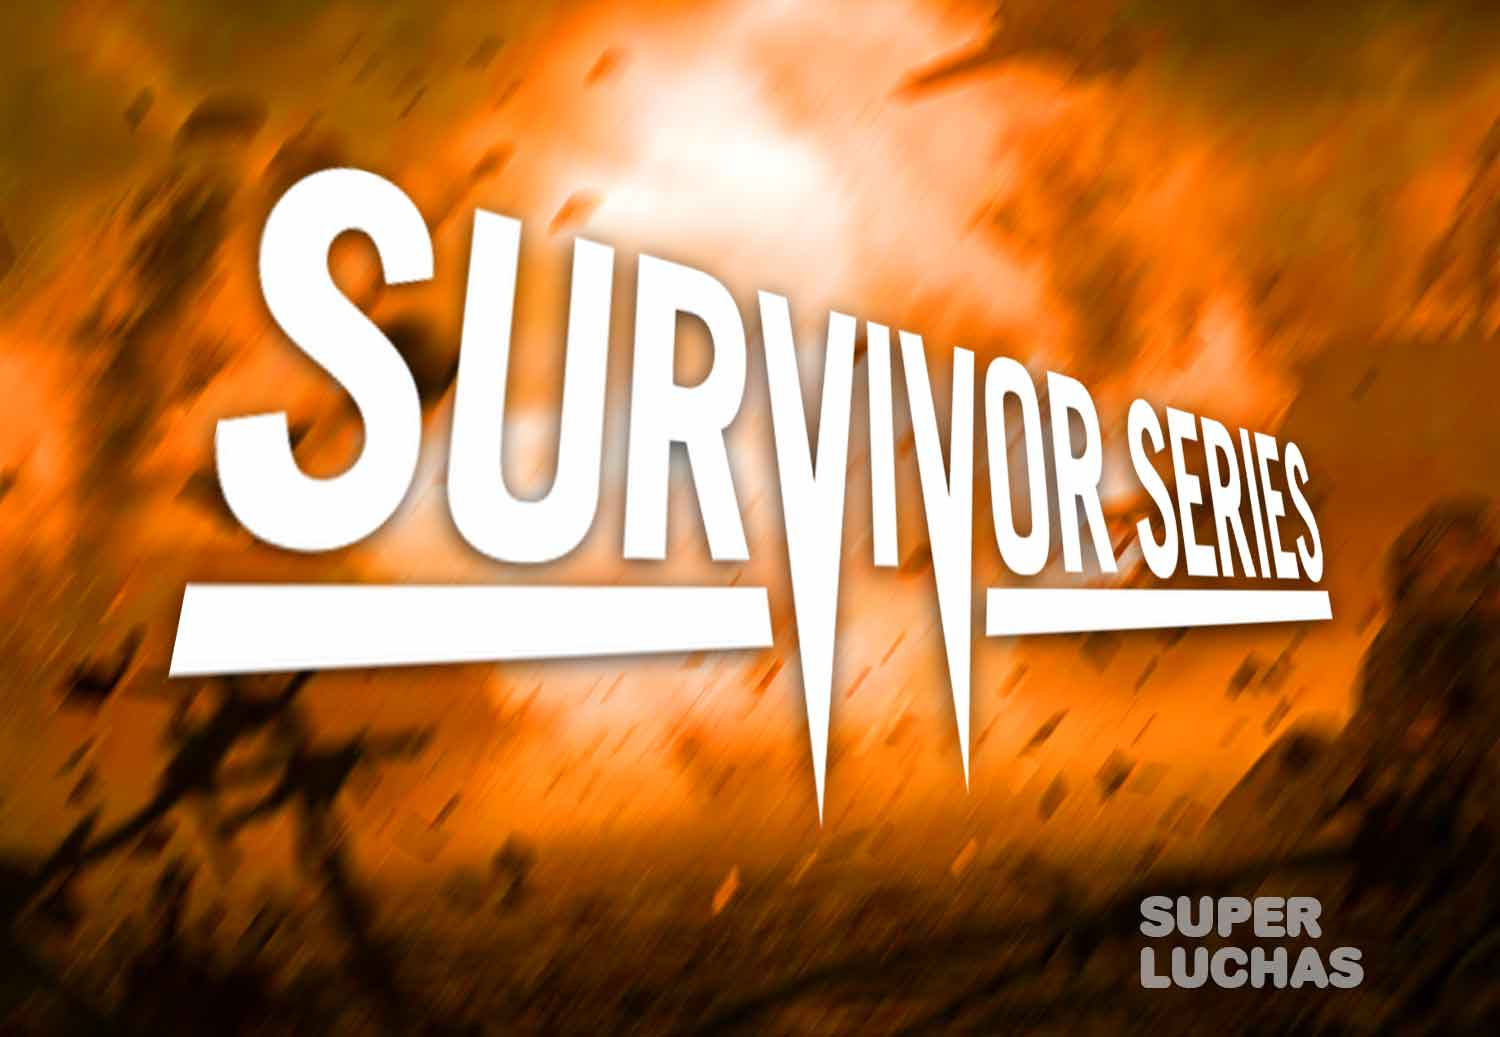 Survivor Series logo